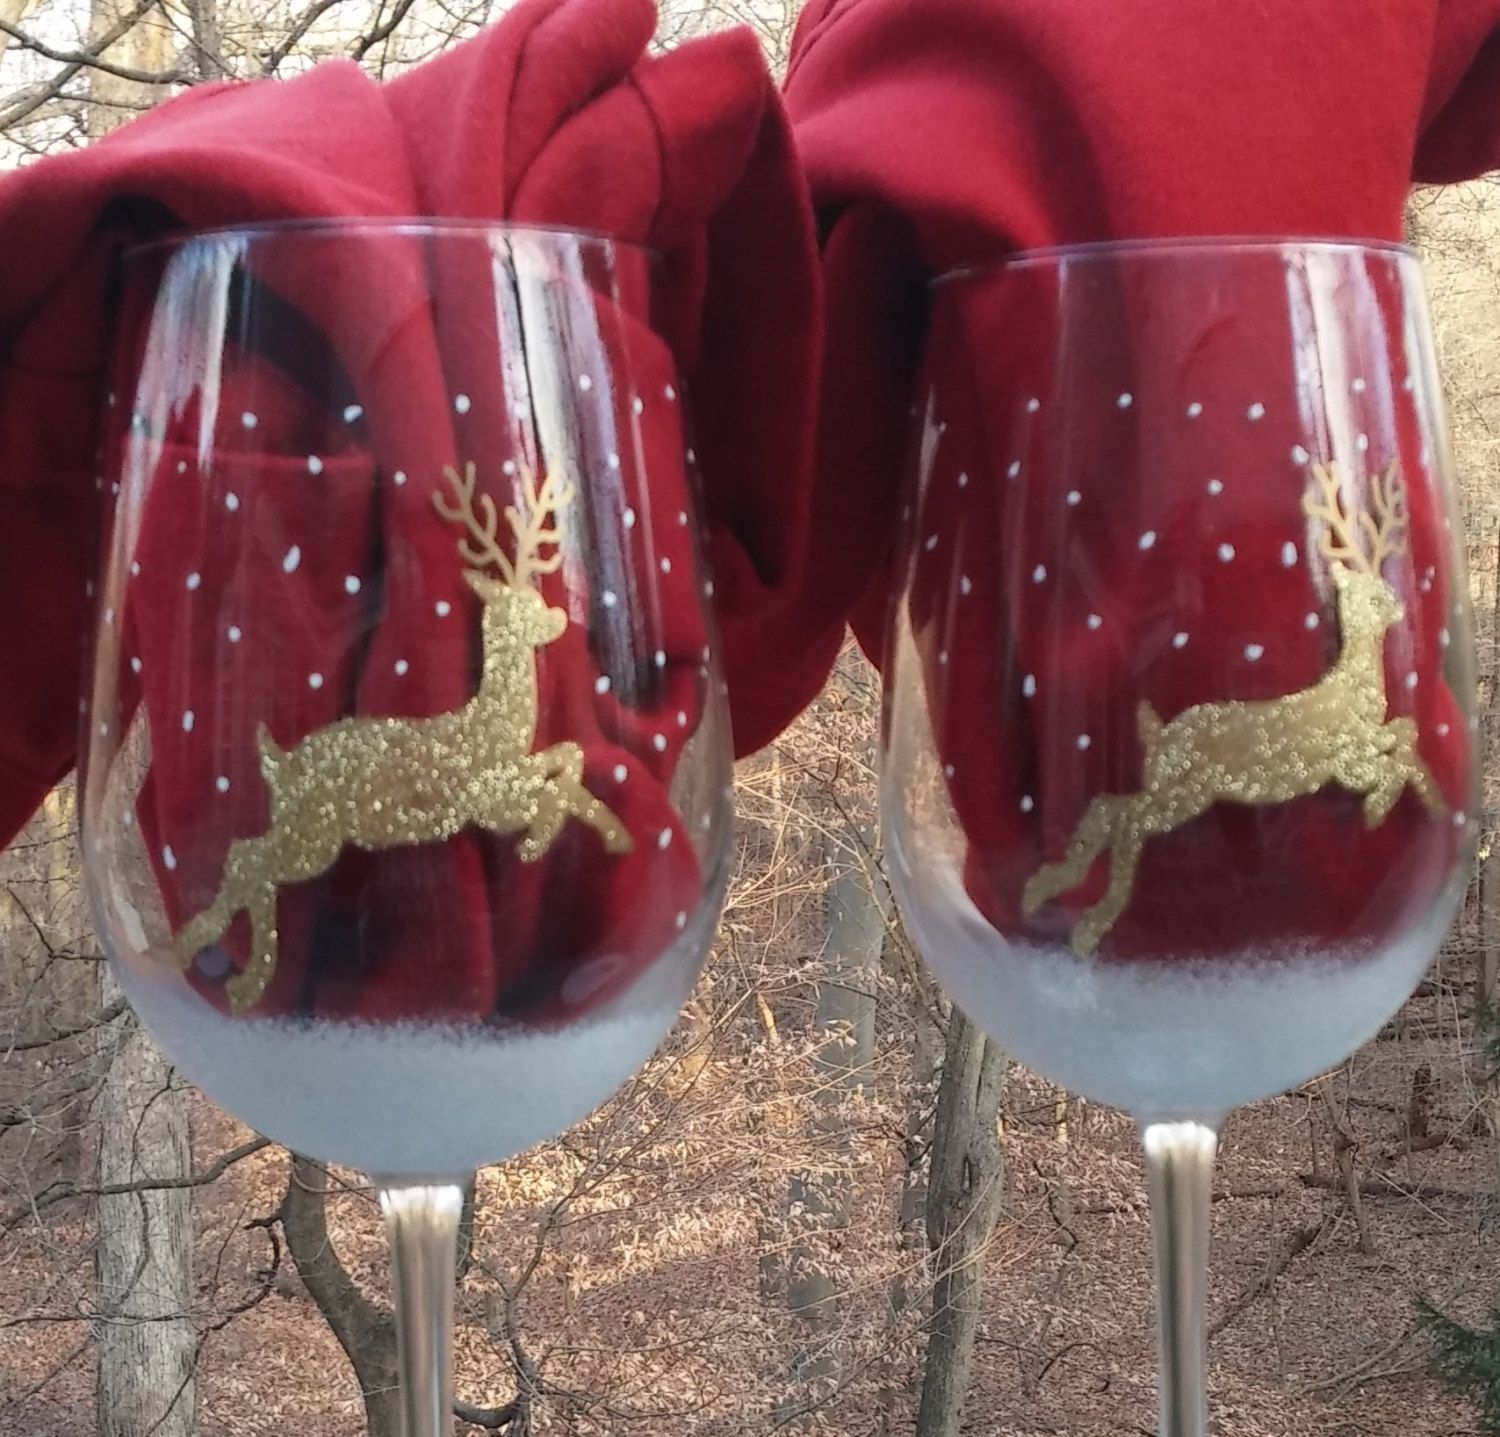 Golden Glittered Reindeer Hand Painted Wine Glasses By Glassesbyjoanne On Etsy With Images Hand Painted Wine Glasses Christmas Wine Glasses Wine Glass Crafts